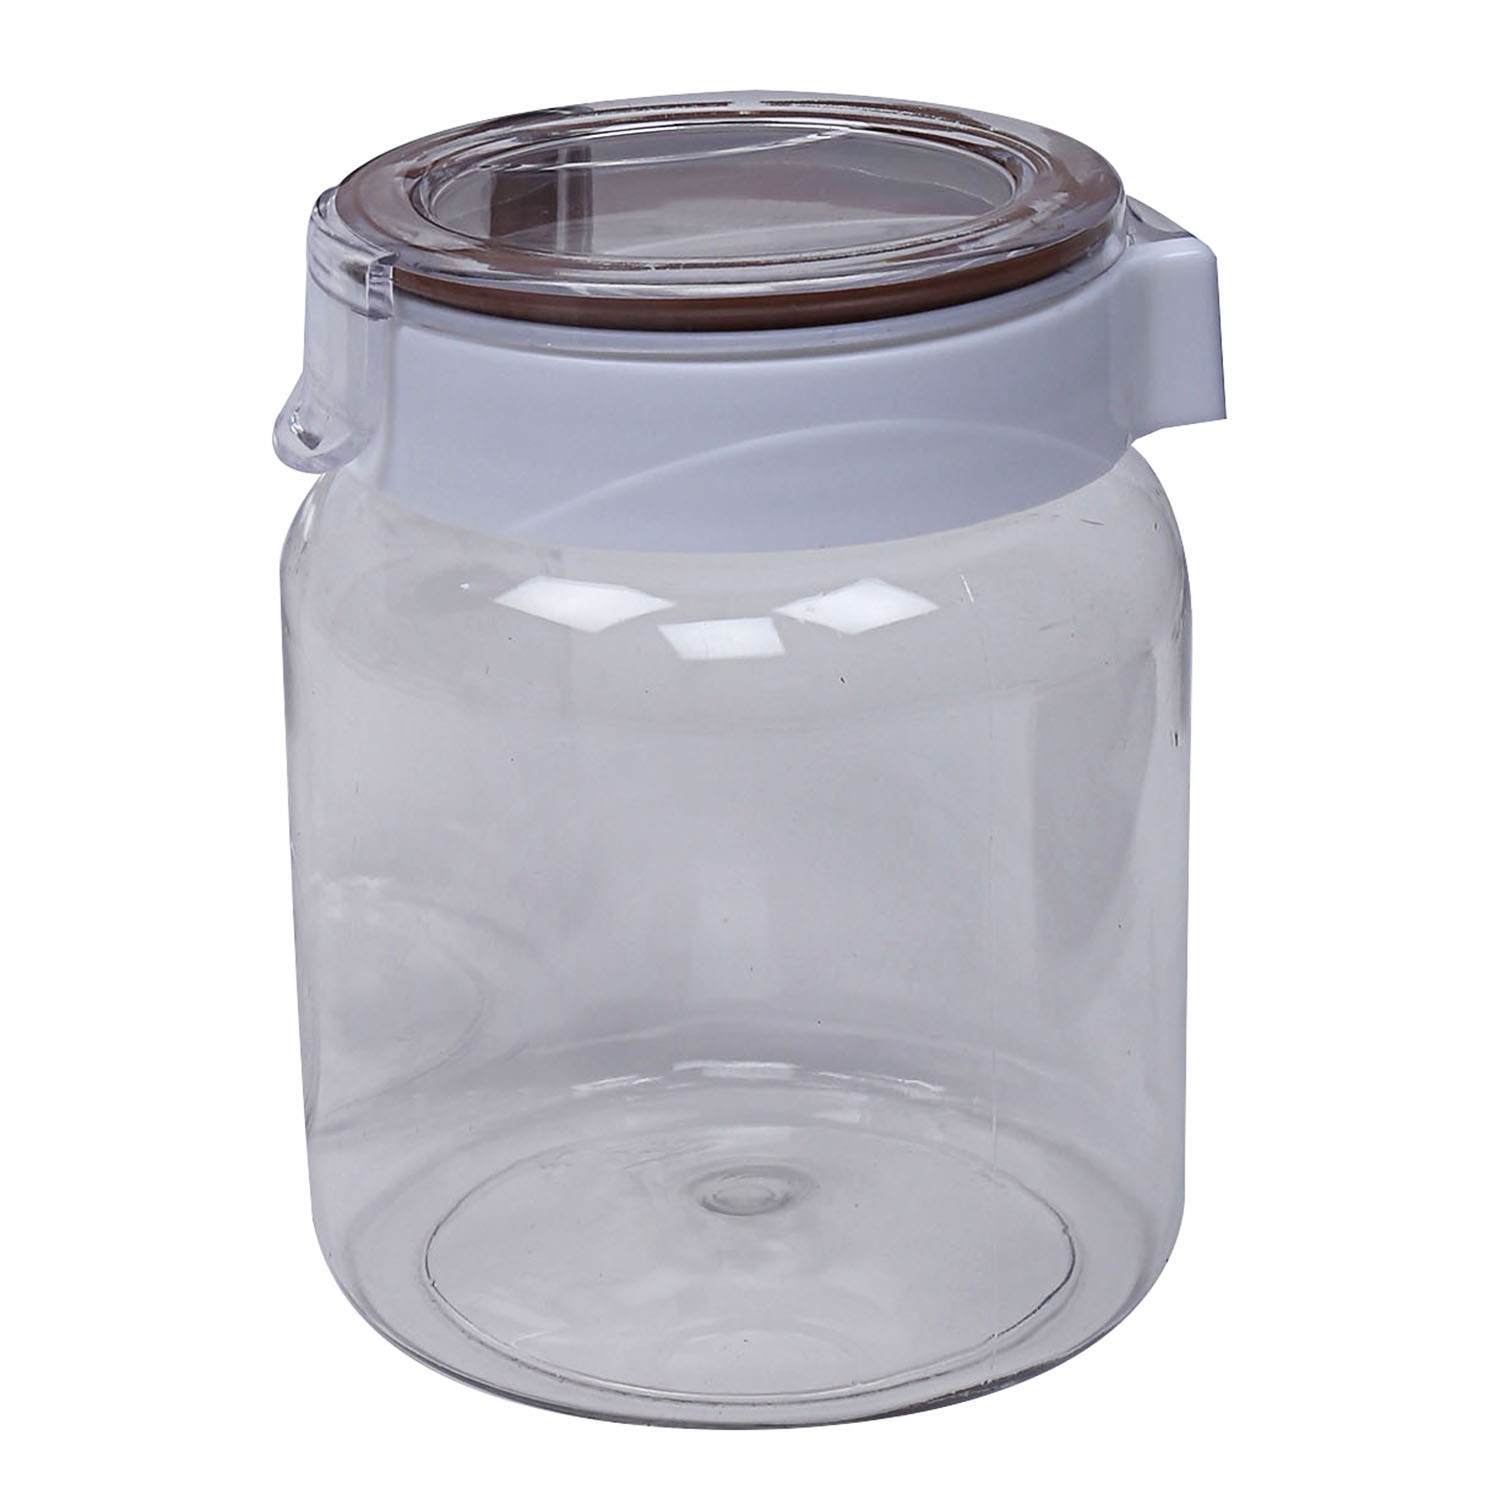 Kuber Industries Plastic Air Tight Lid 4 Pieces Multipurpose Storage Container Set 350 ml (Transperant) - CTKTC23411